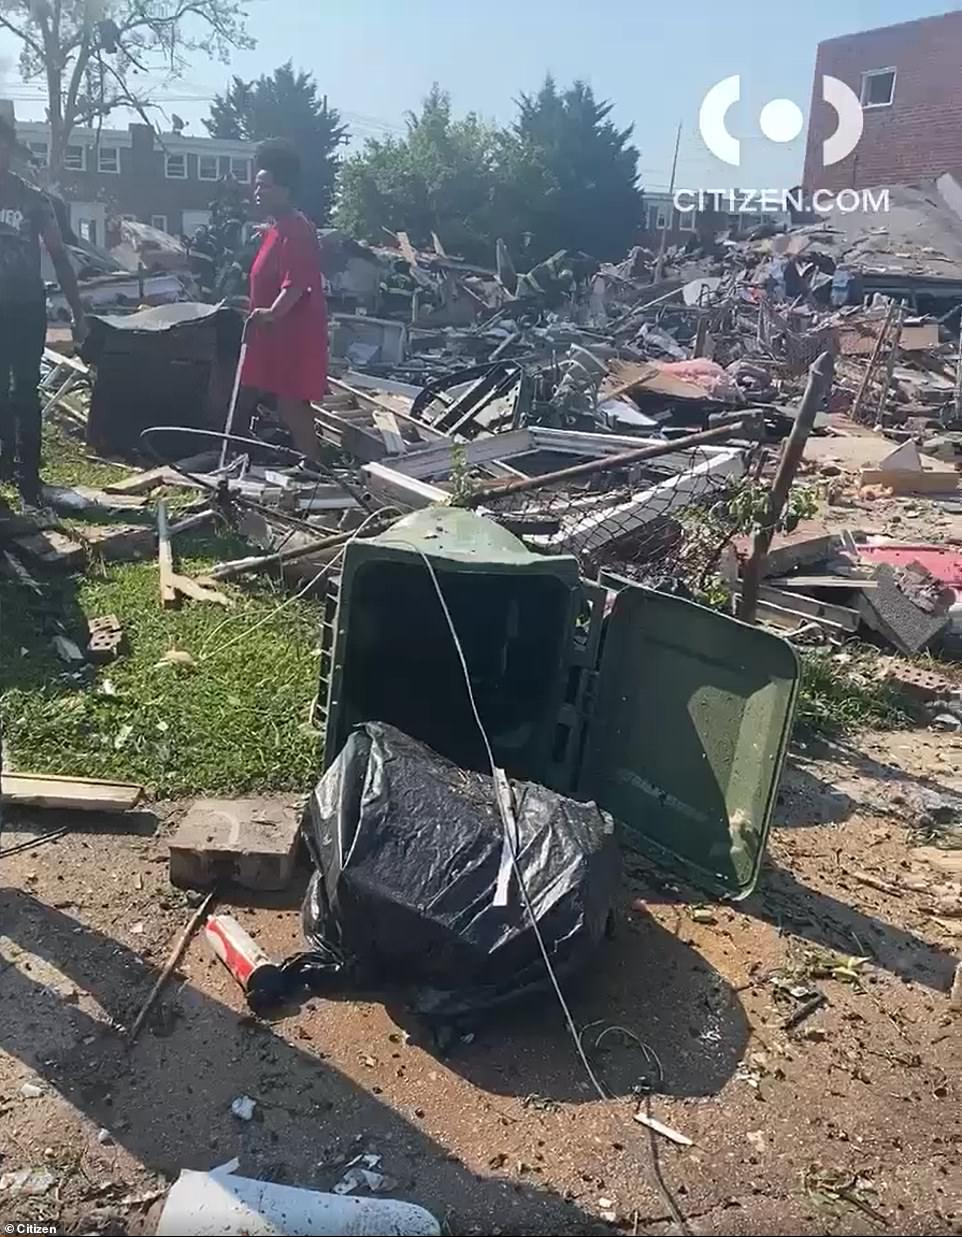 At least one person has been killed and another two are in a critical condition after a 'major explosion' destroyed at least three homes in Baltimore and trapped victims, including children, under the rubble. Pictured: the scene